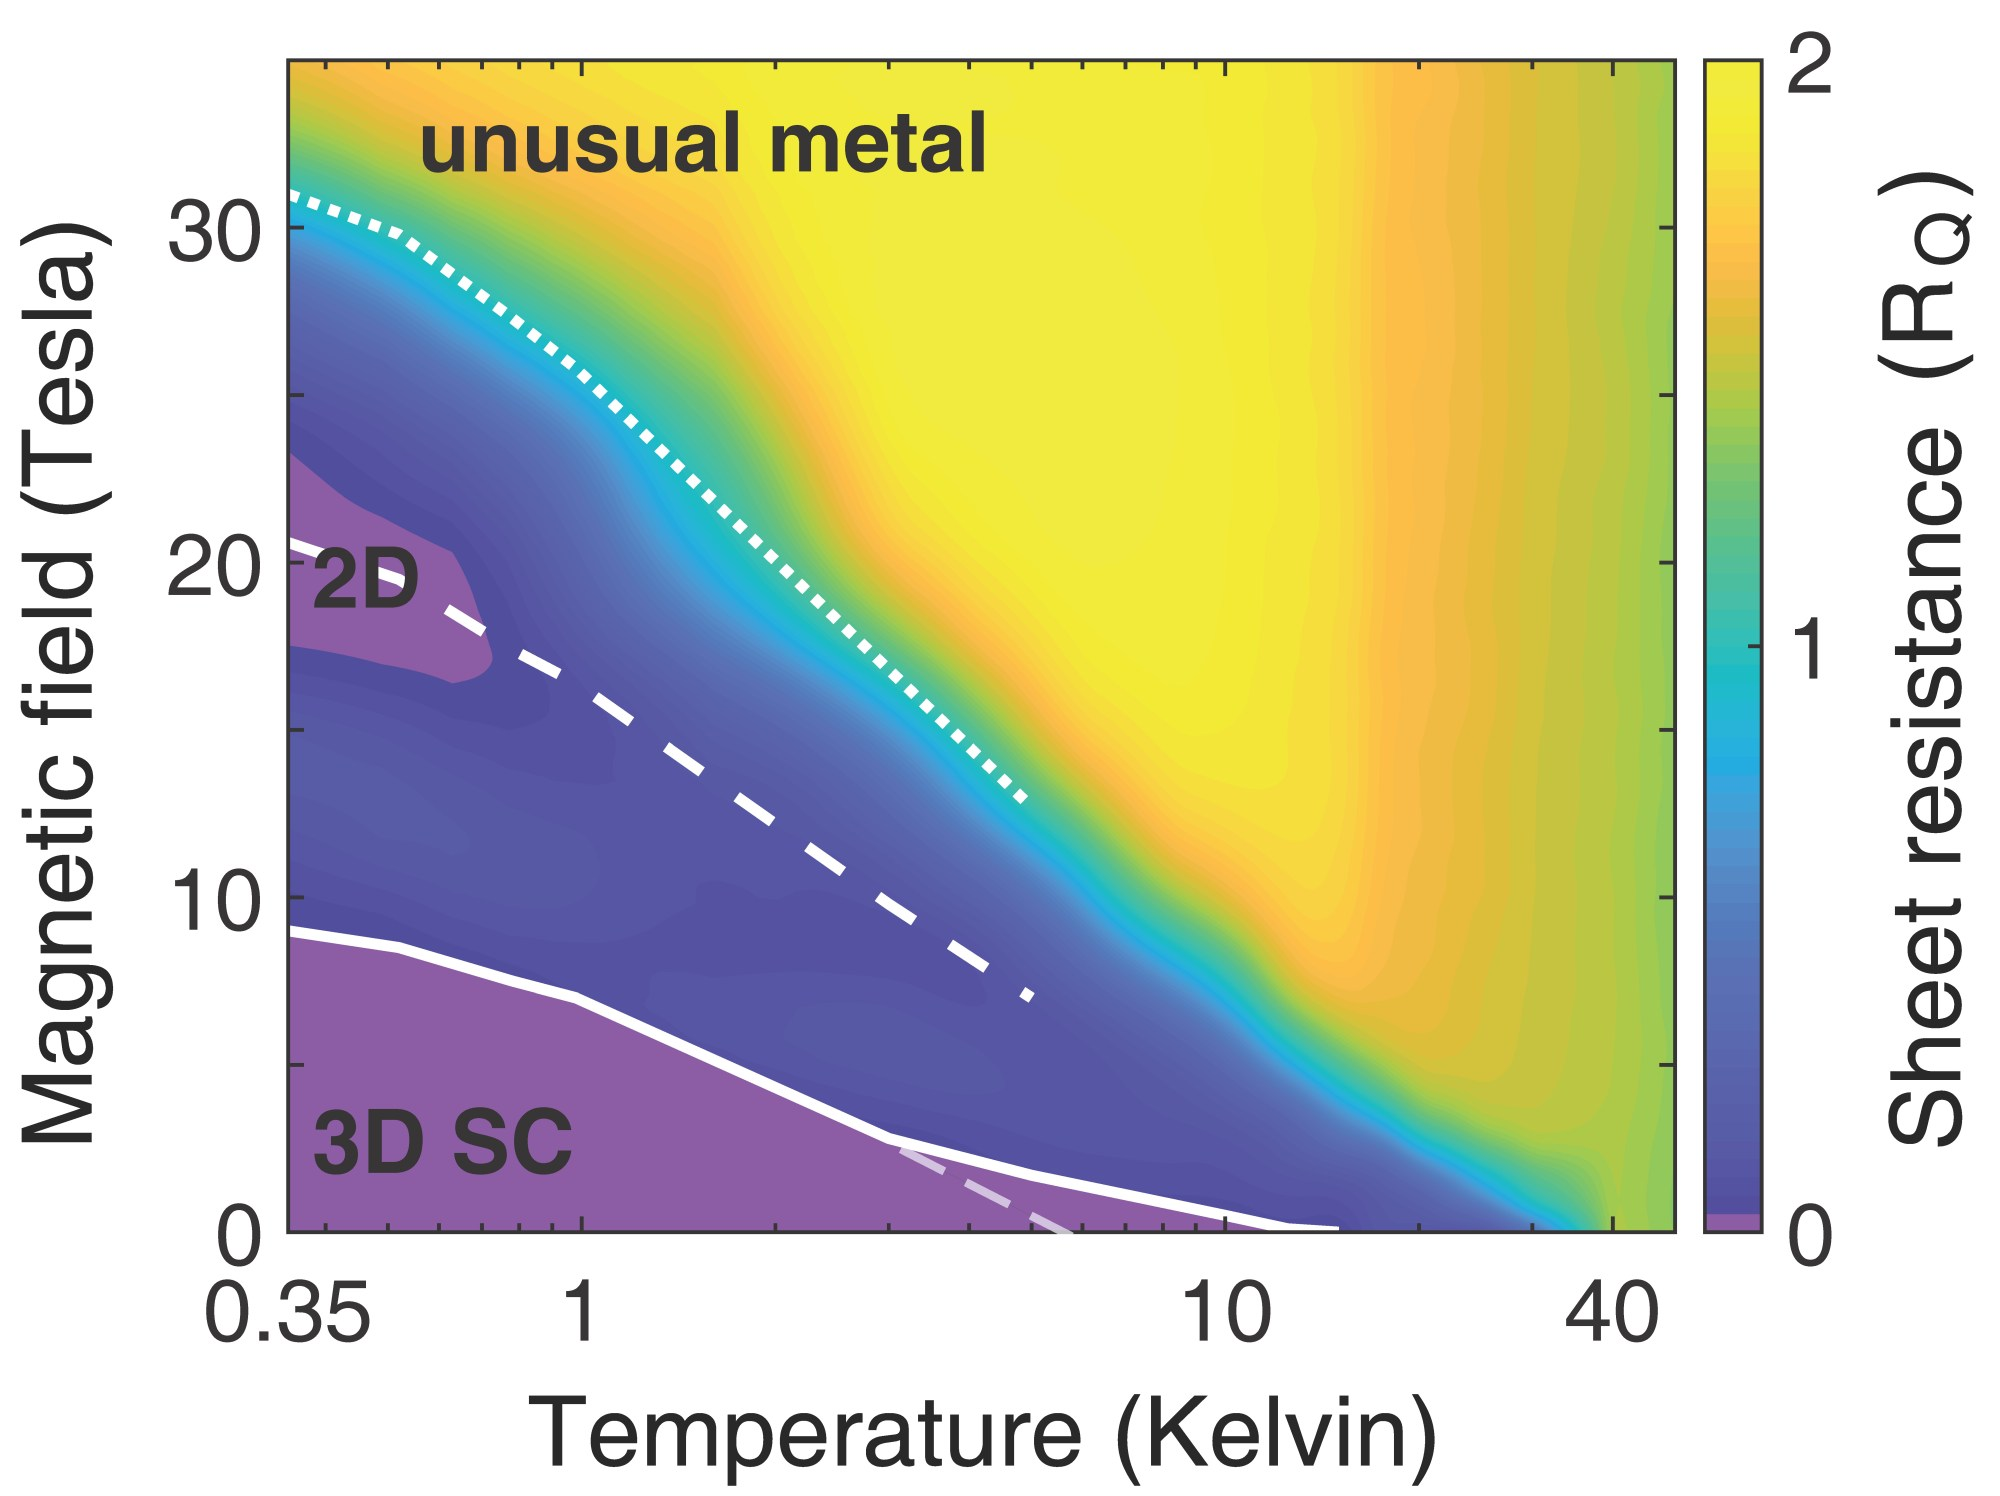 hight resolution of a phase diagram of lbco at different temperatures and magnetic field strengths colors represent how resistant the material is to the flow of electrical